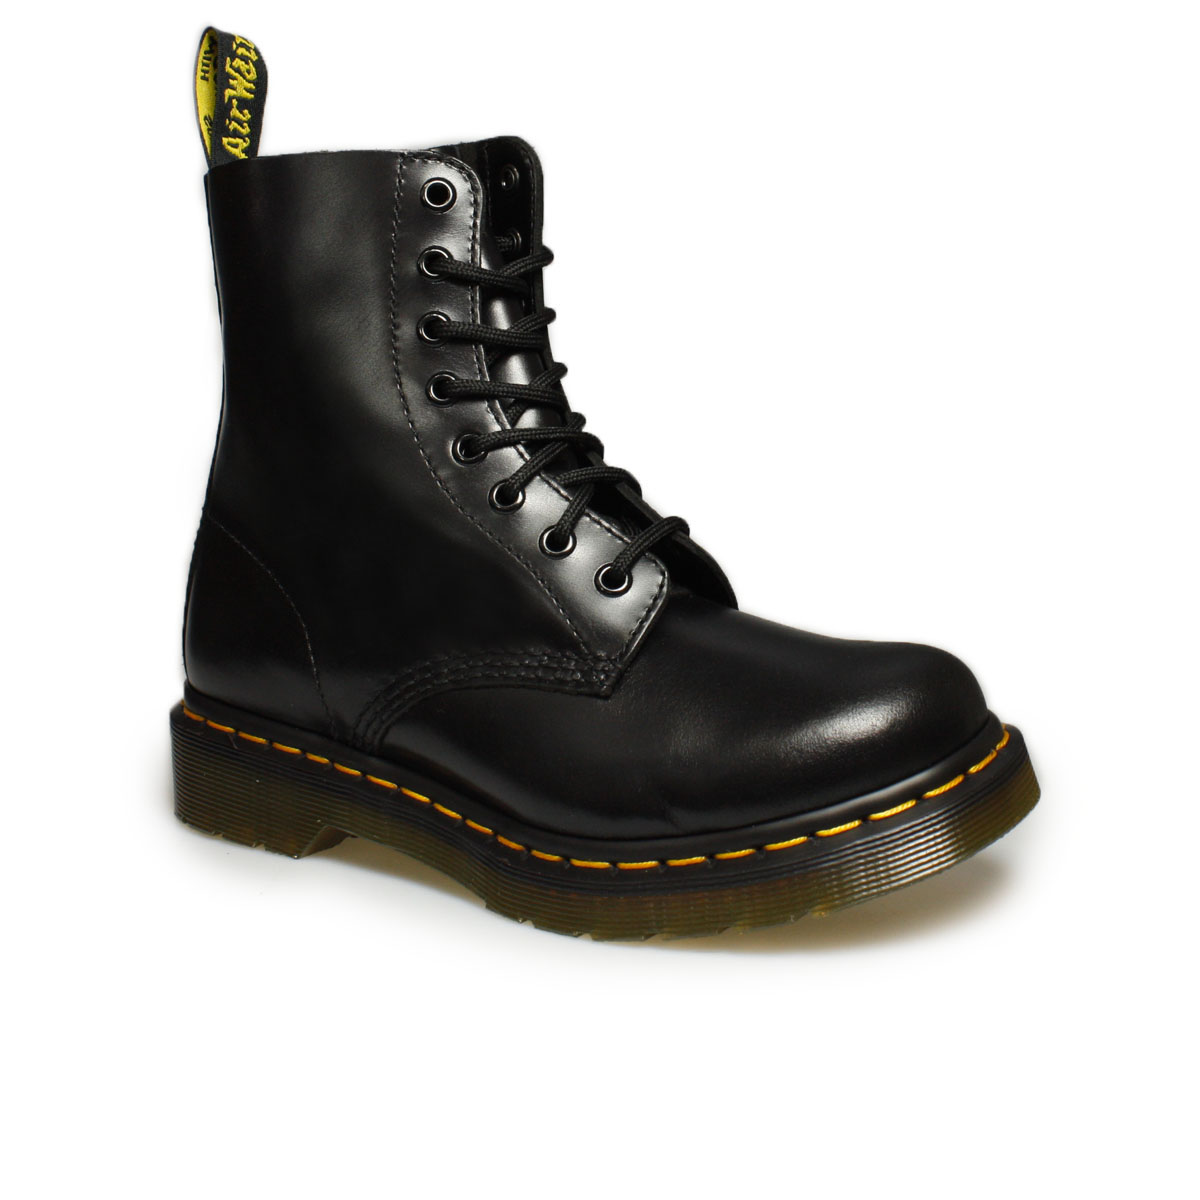 dr martens black pascal buttero boots size 3 8 ebay. Black Bedroom Furniture Sets. Home Design Ideas